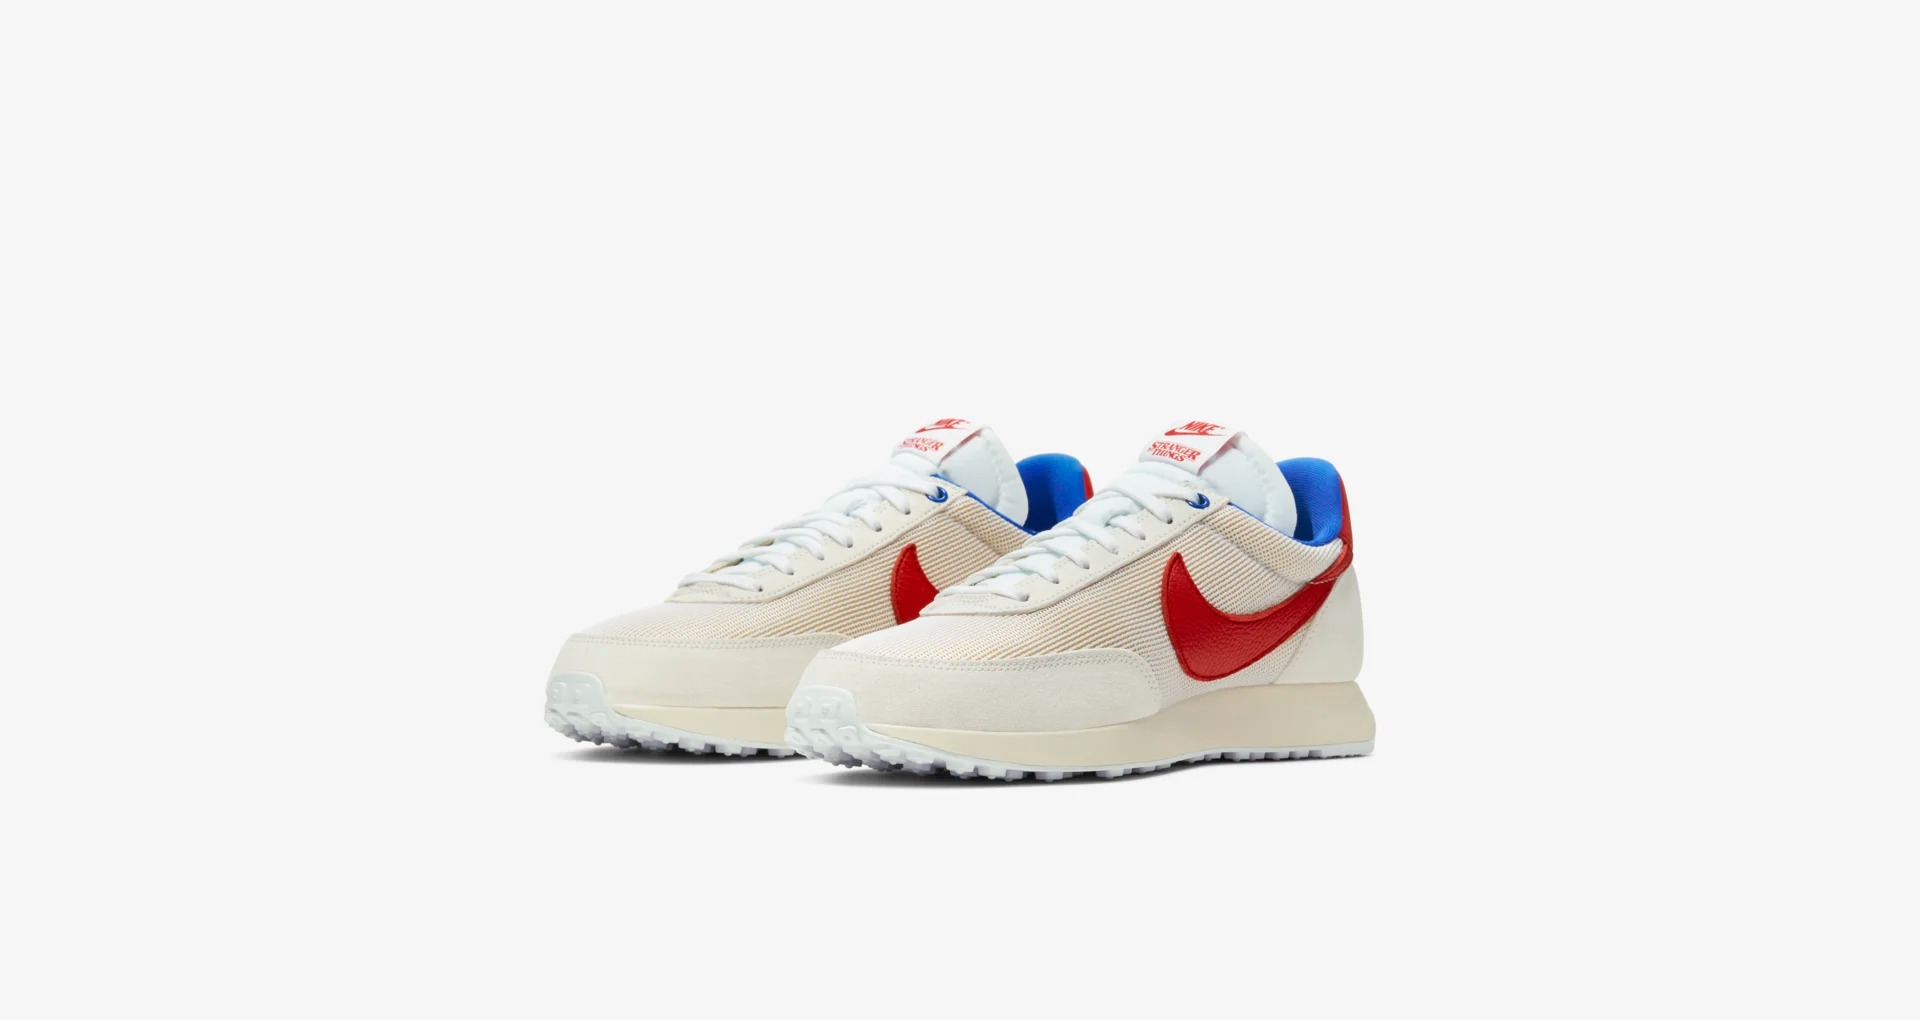 CK1905 100 Stranger Things x Nike Air Tailwind 79 4